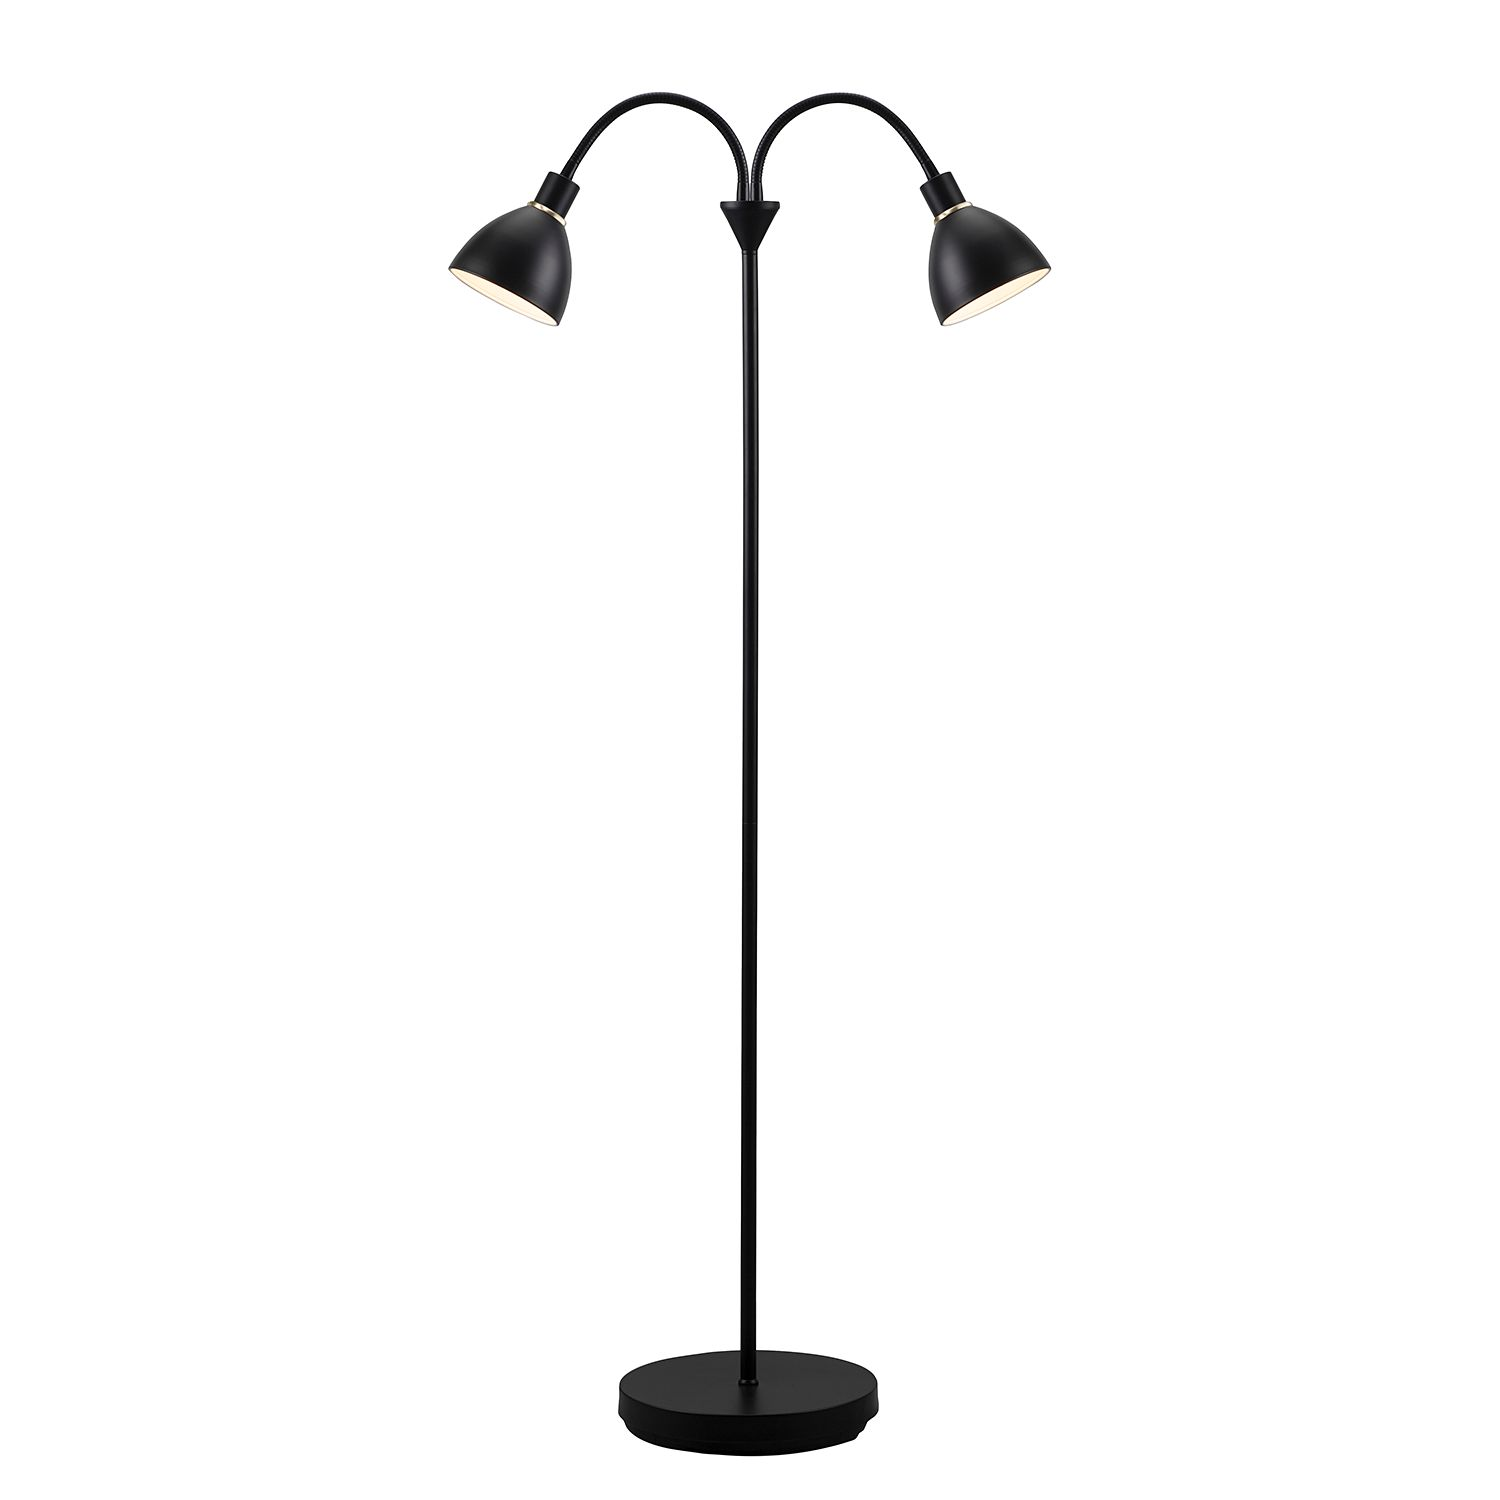 energie  A++, Staande lamp Ray IV - staal - 2 lichtbronnen, Nordlux